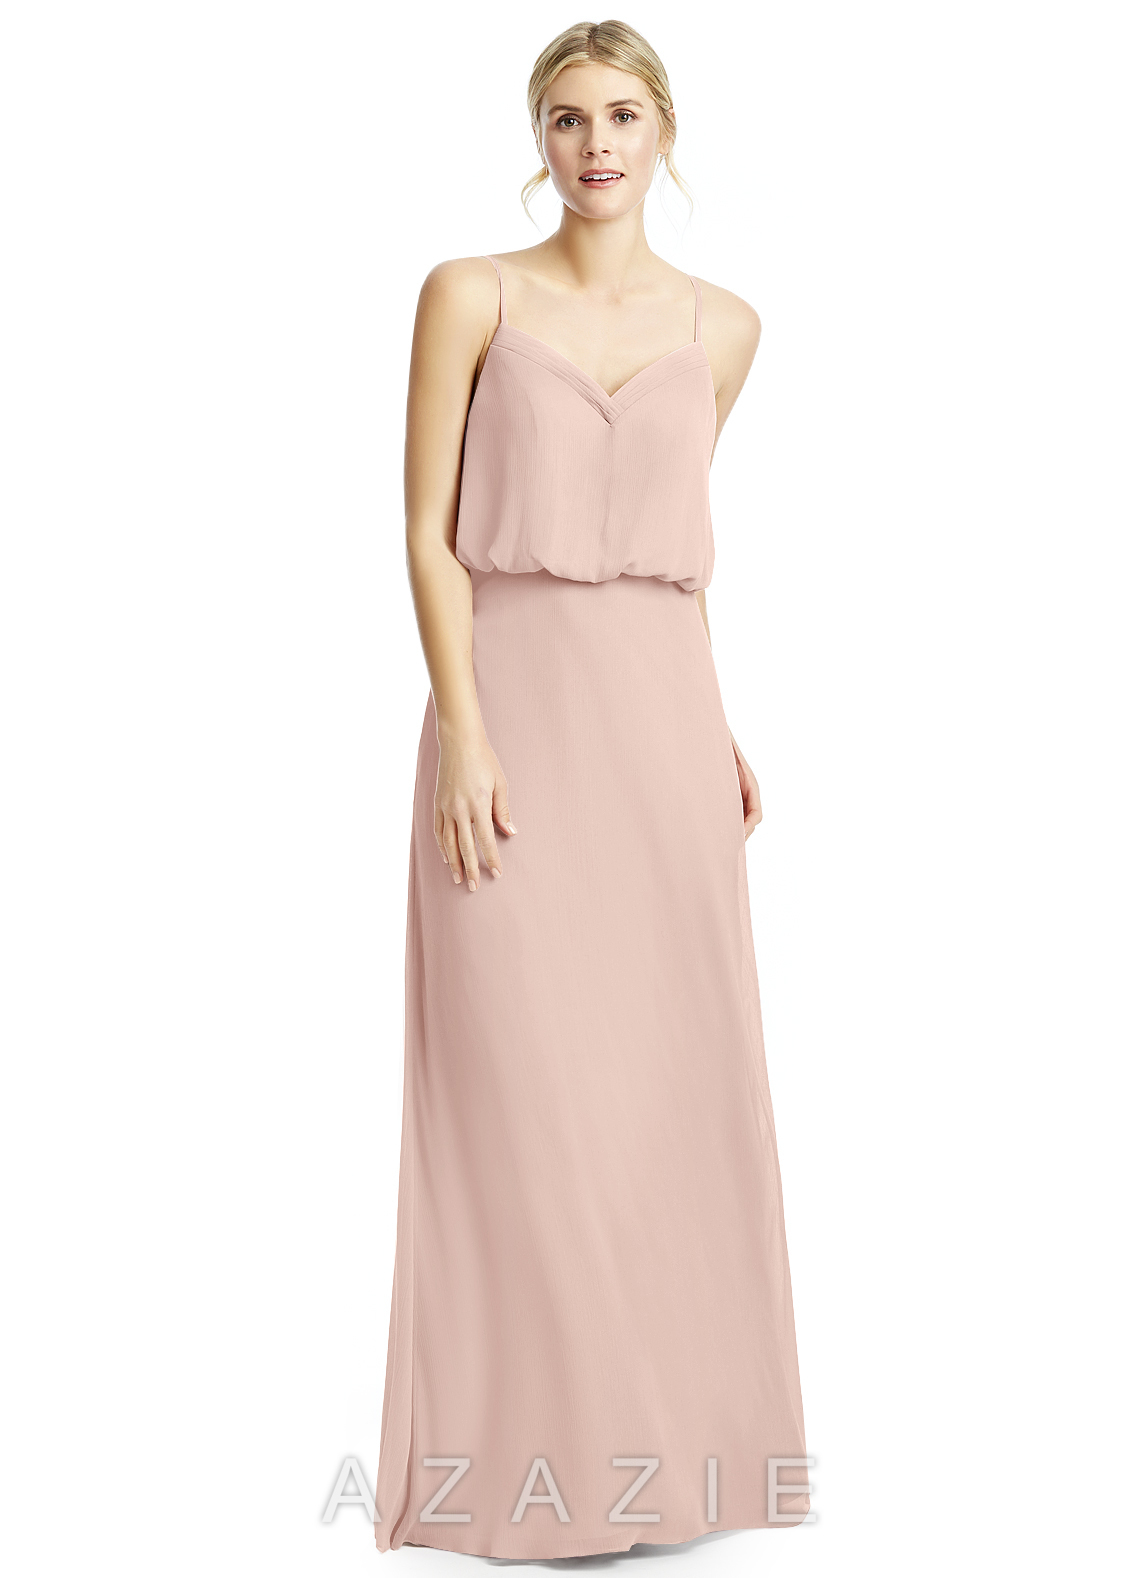 Azazie Rebecca Bridesmaid Dress - Dusty Rose | Azazie